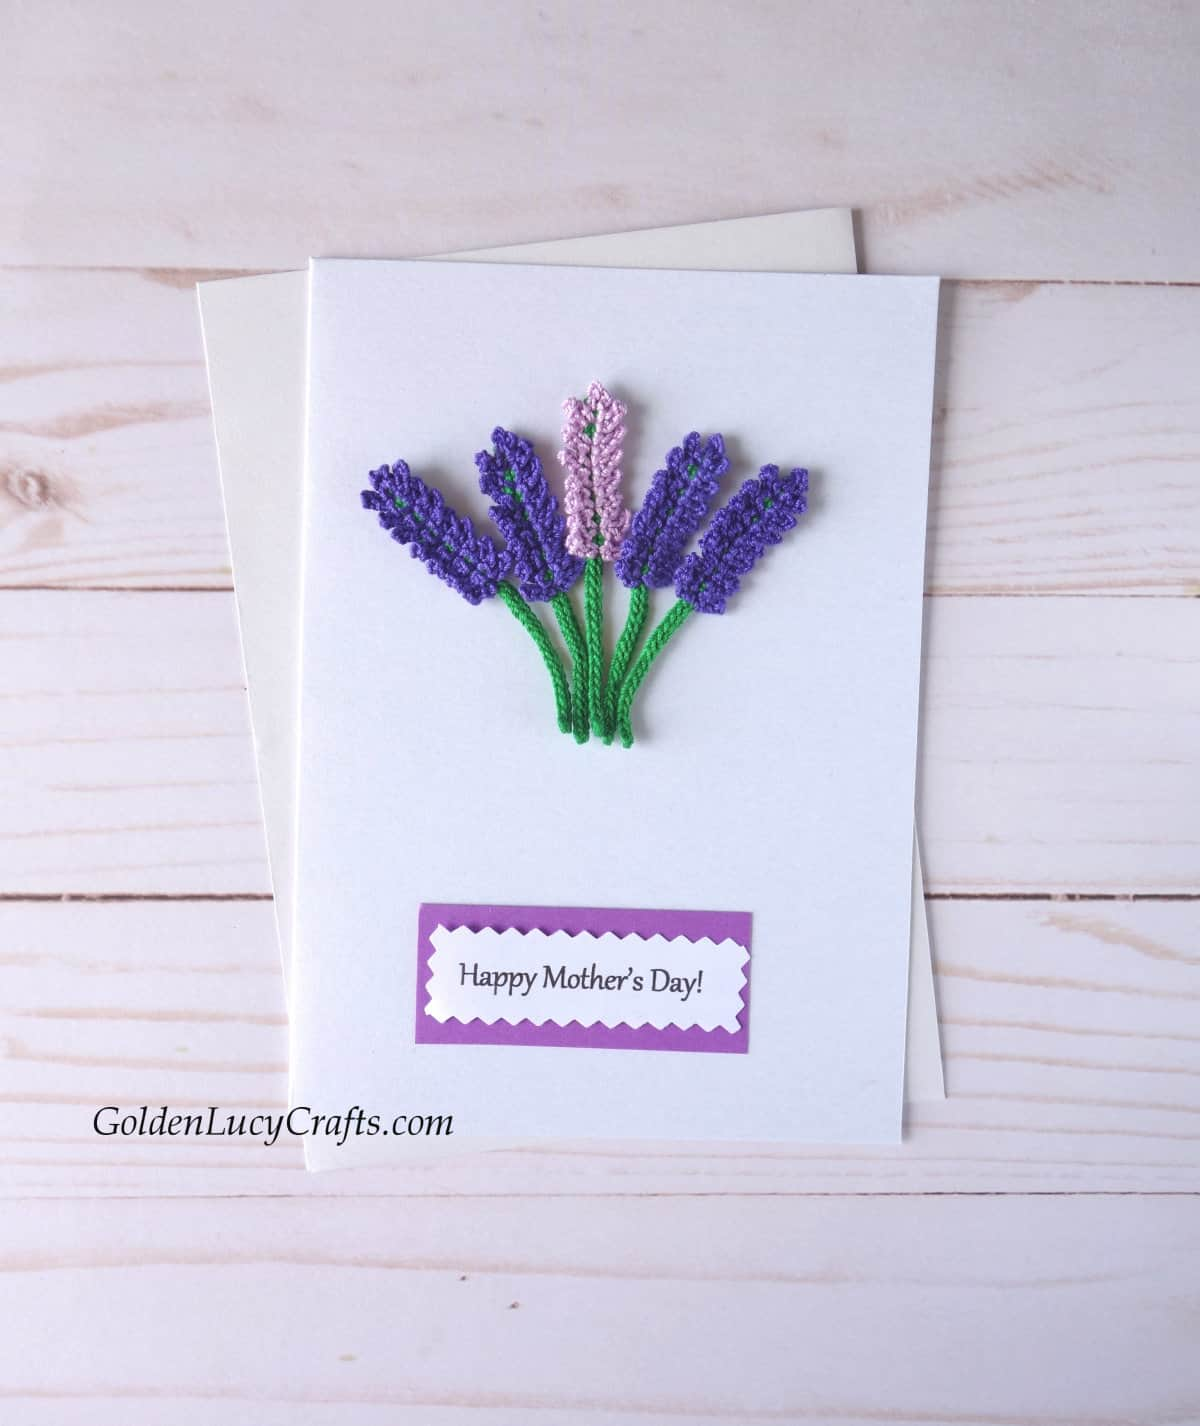 Mother's Day card with crochet lavender flowers.